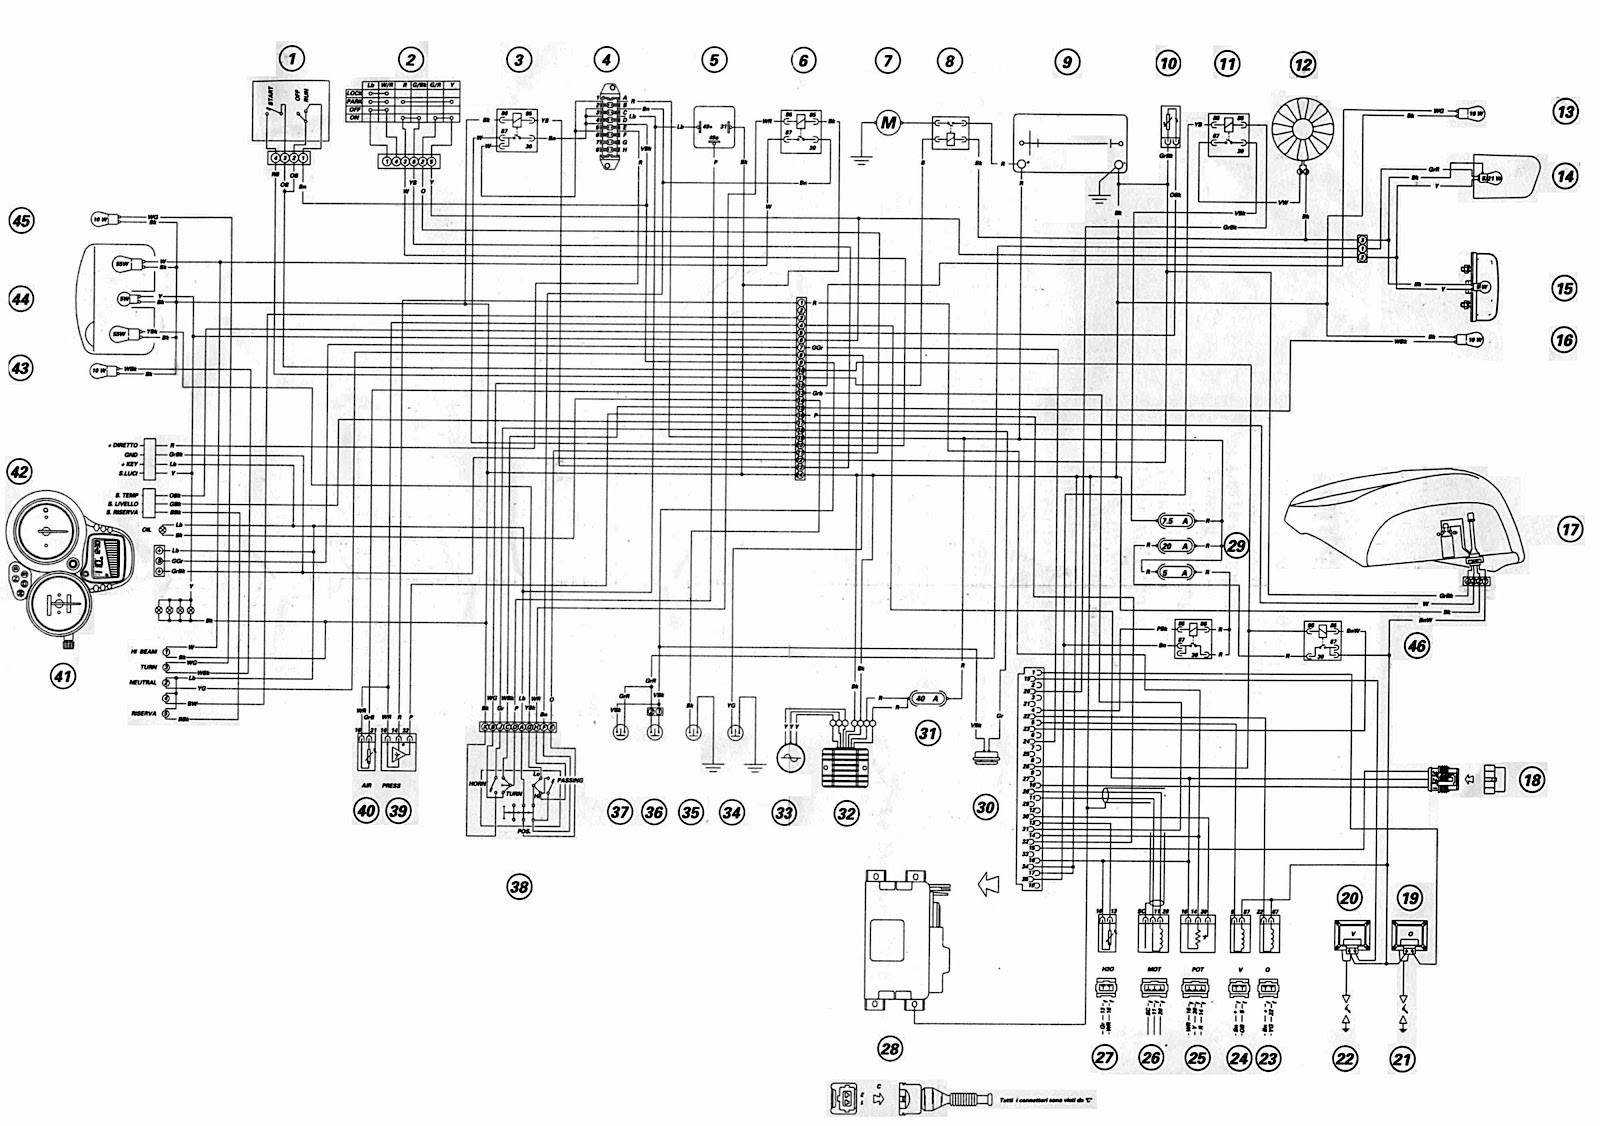 99 Suzuki Quadrunner Wiring Diagram Electrical Diagrams 1987 Gsxr Cdi Unique 5 Pin Headlight